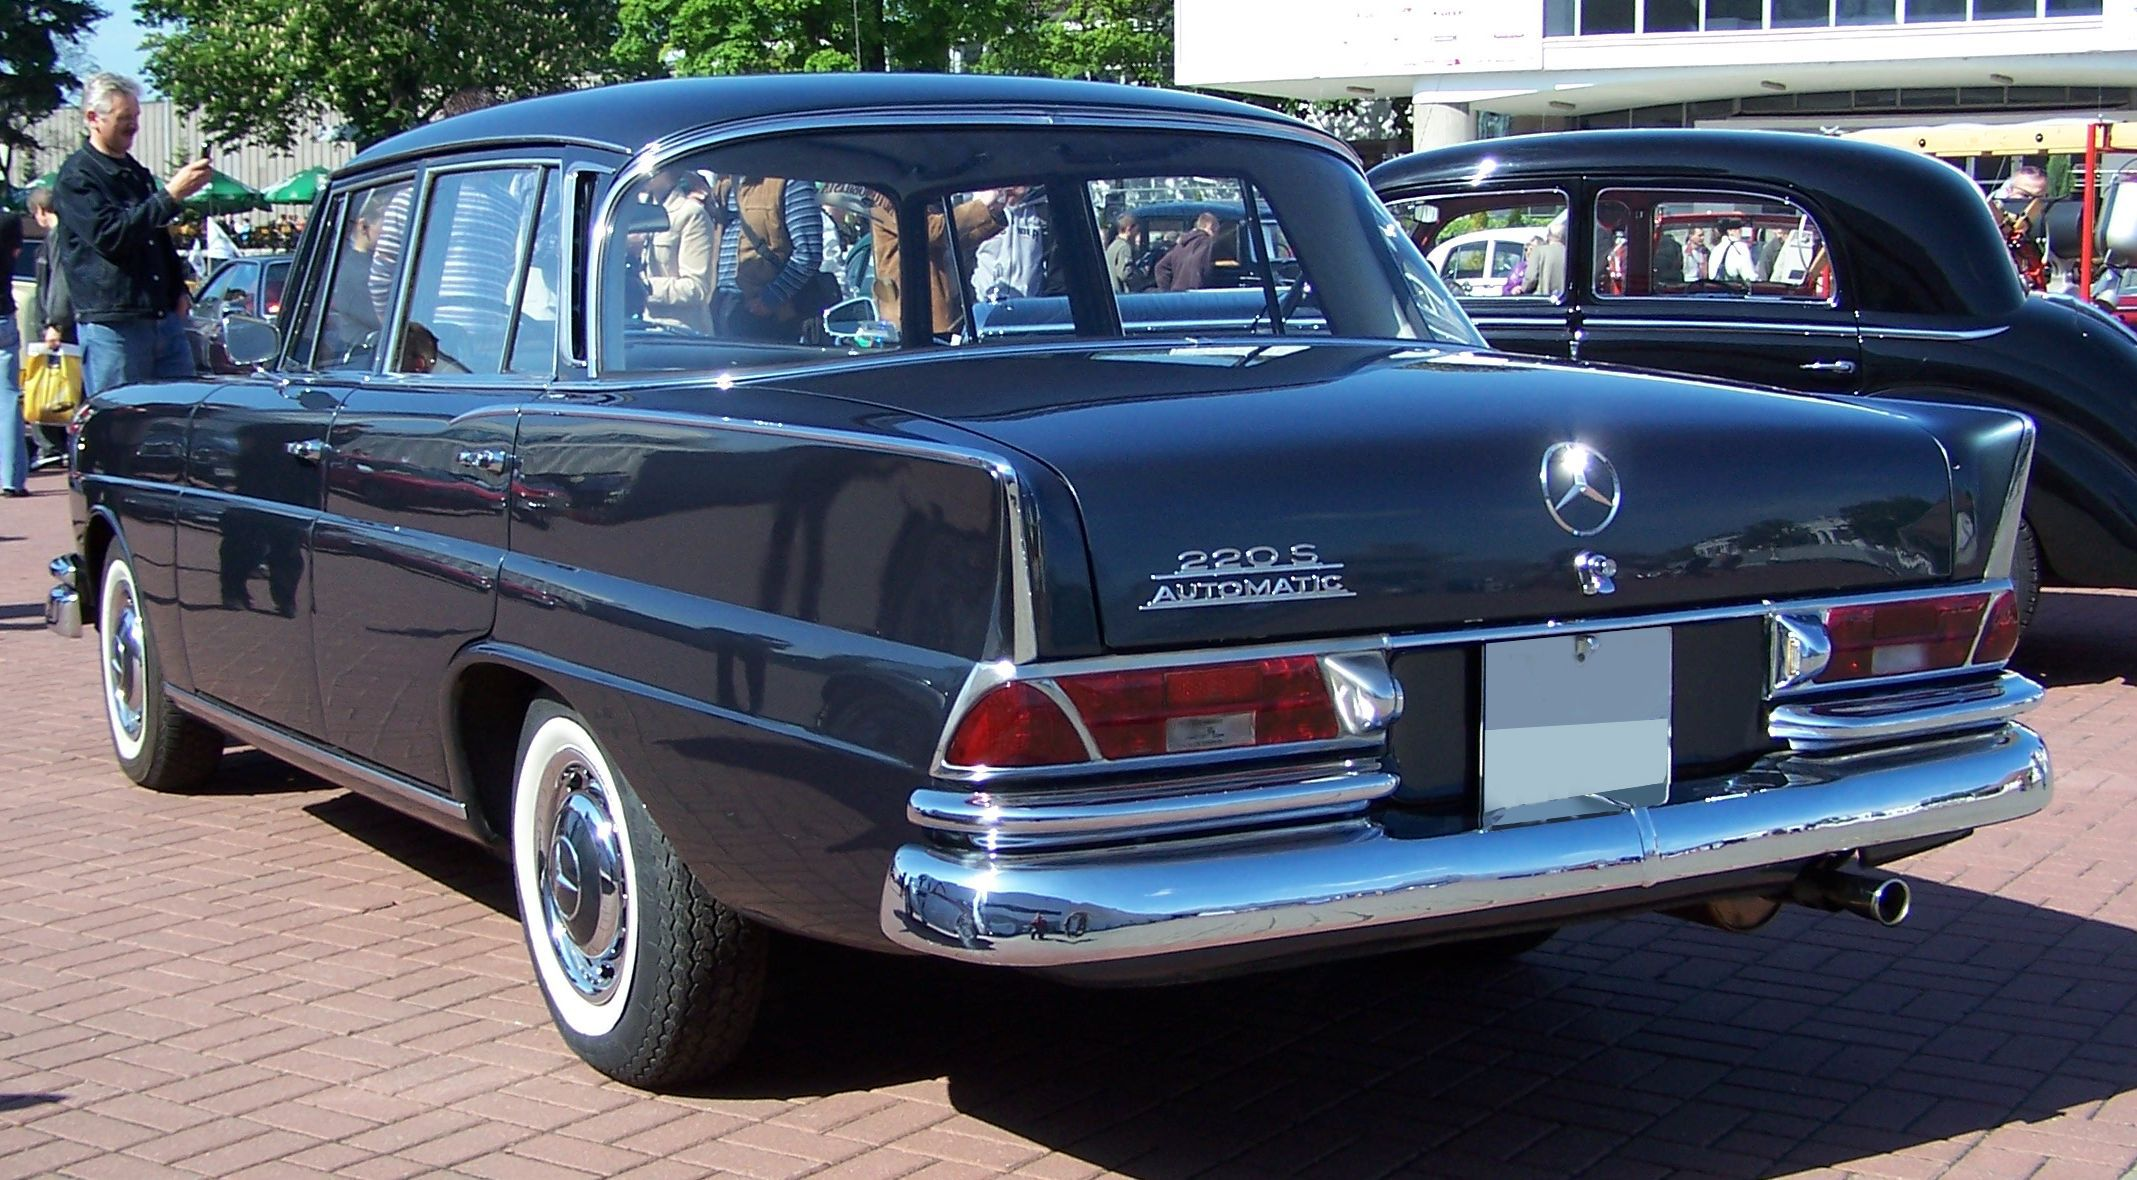 1964 mercedes 220s - Google Search | My favorite cars - 1960\'s ...